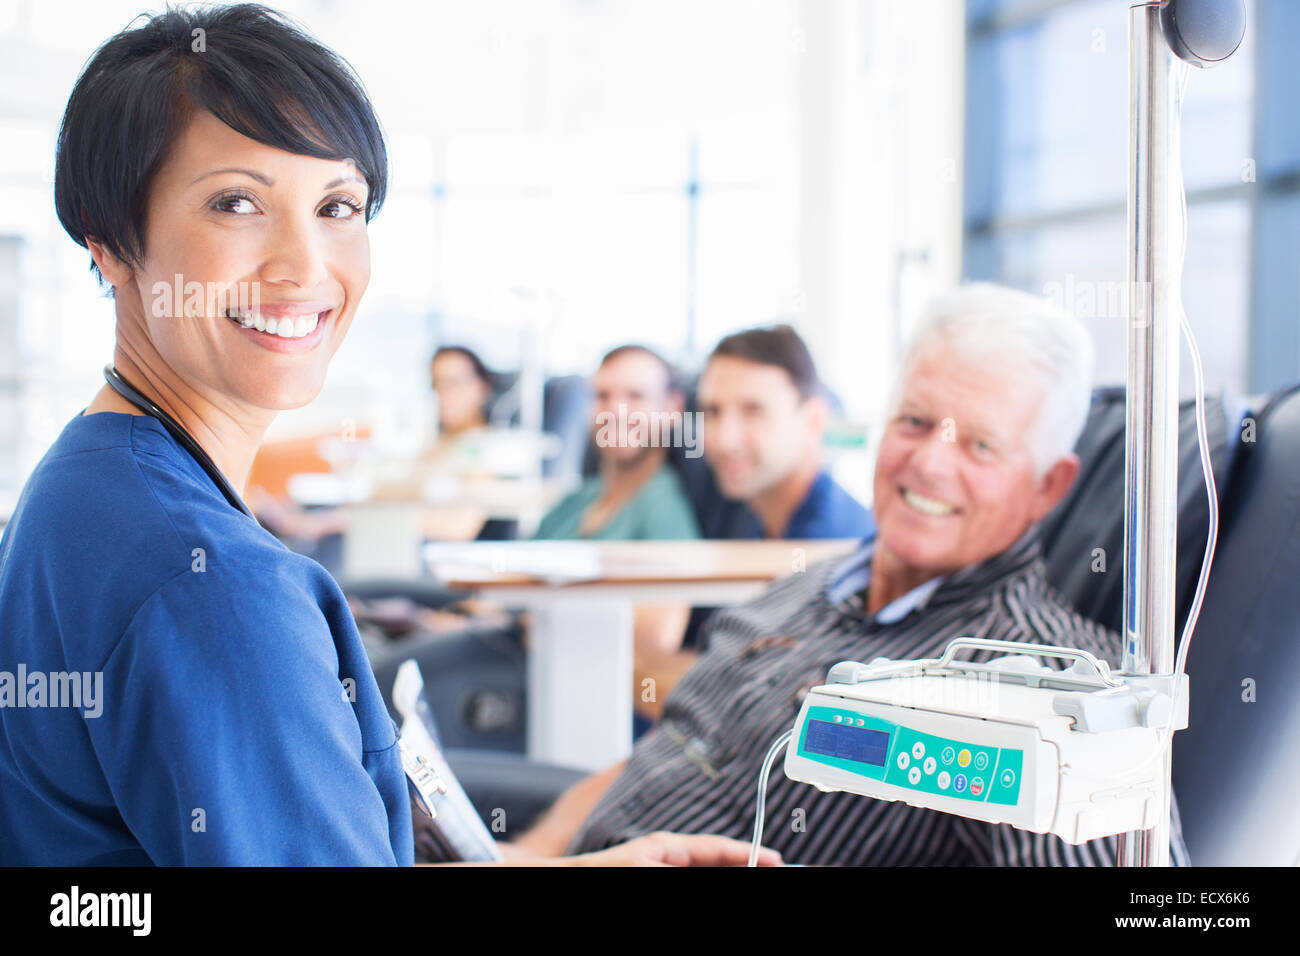 Portrait of smiling doctor assisting patient undergoing medical treatment in outpatient clinic - Stock Image